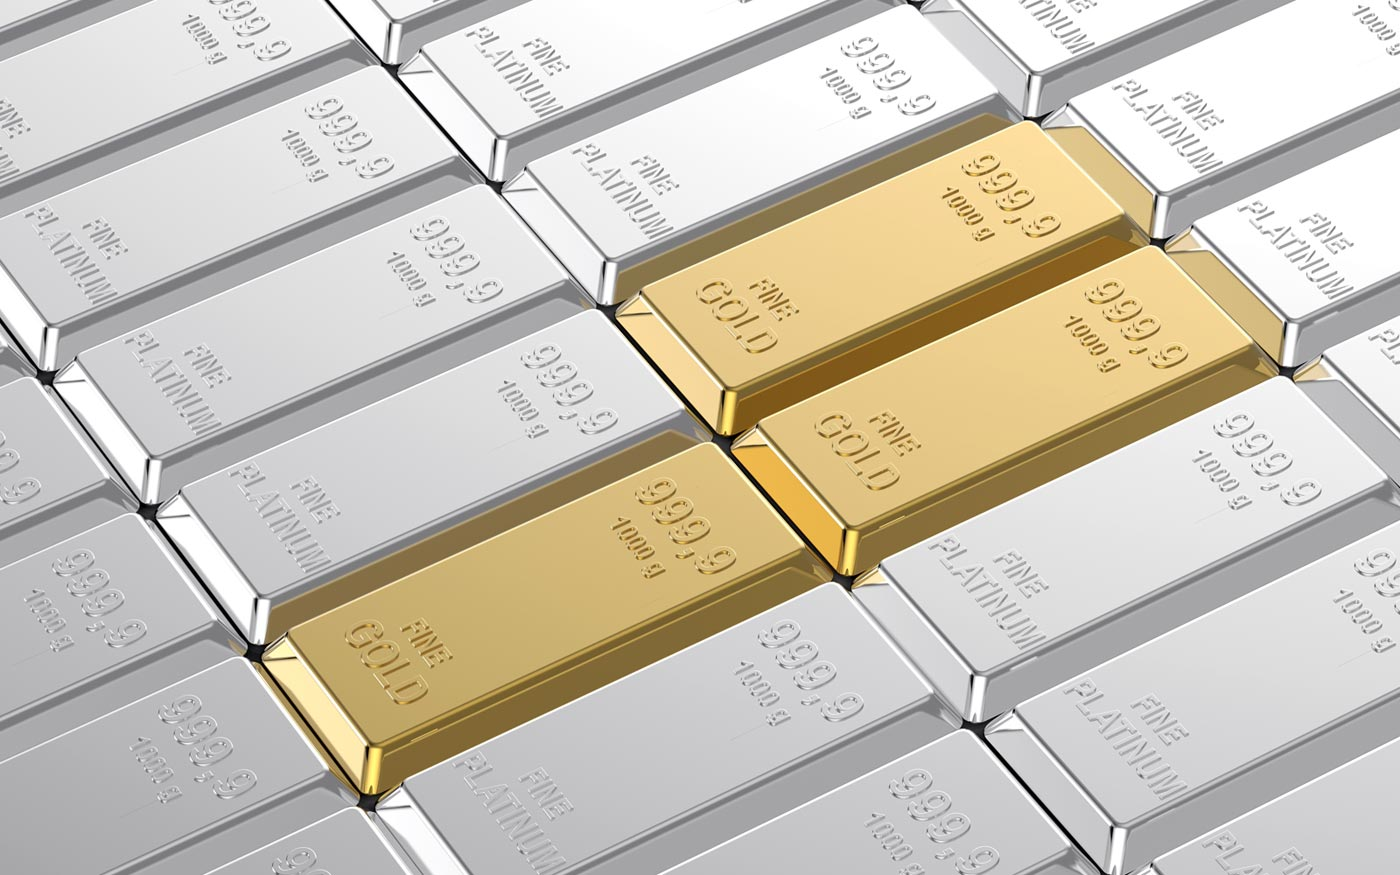 An Informative Article About Precious Metals Investments